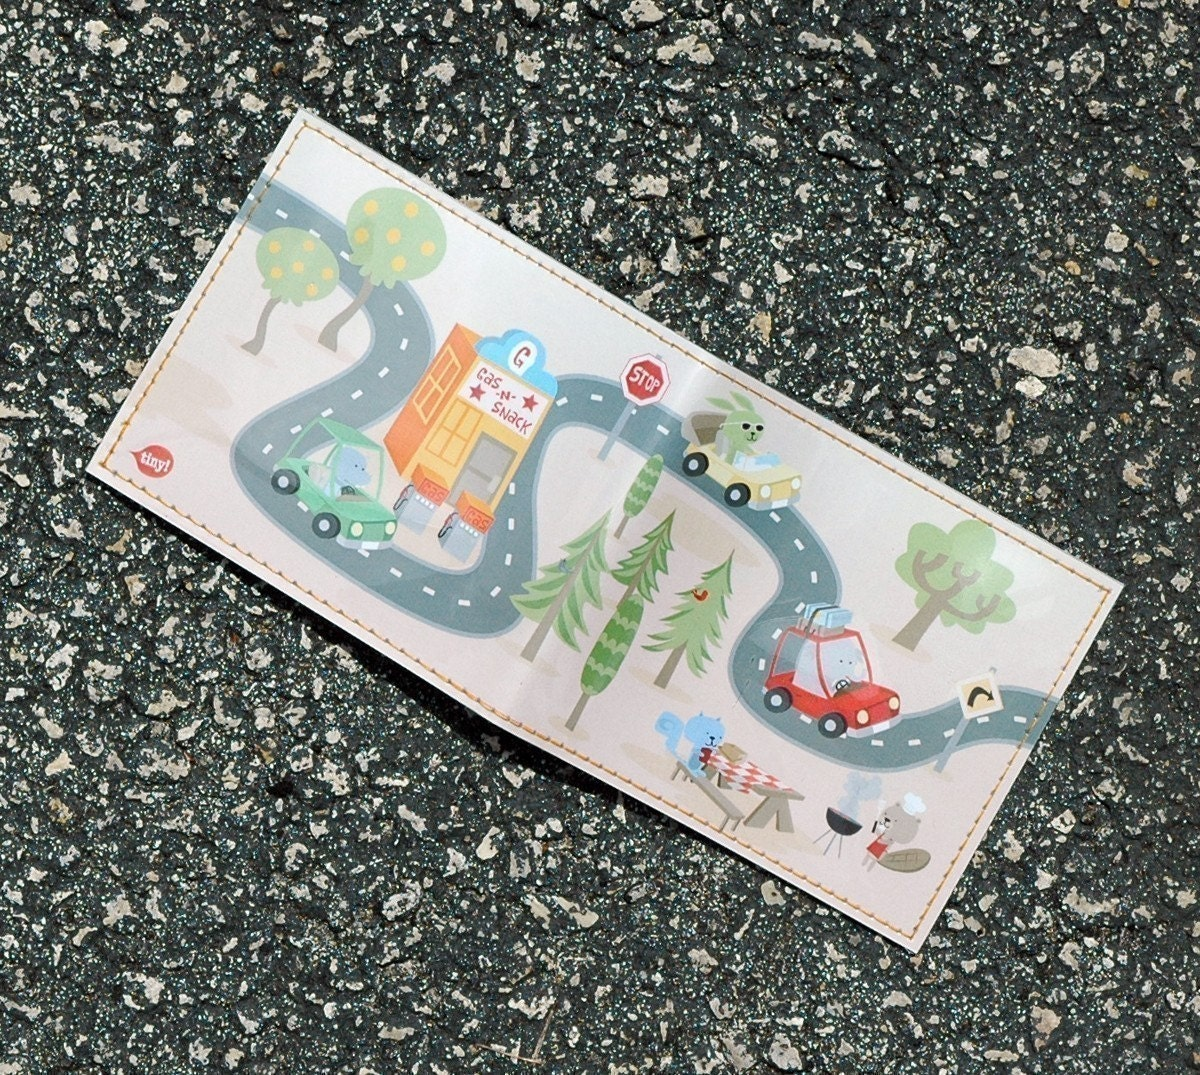 On the Road Wallet - Zach Trover for Tinymeat